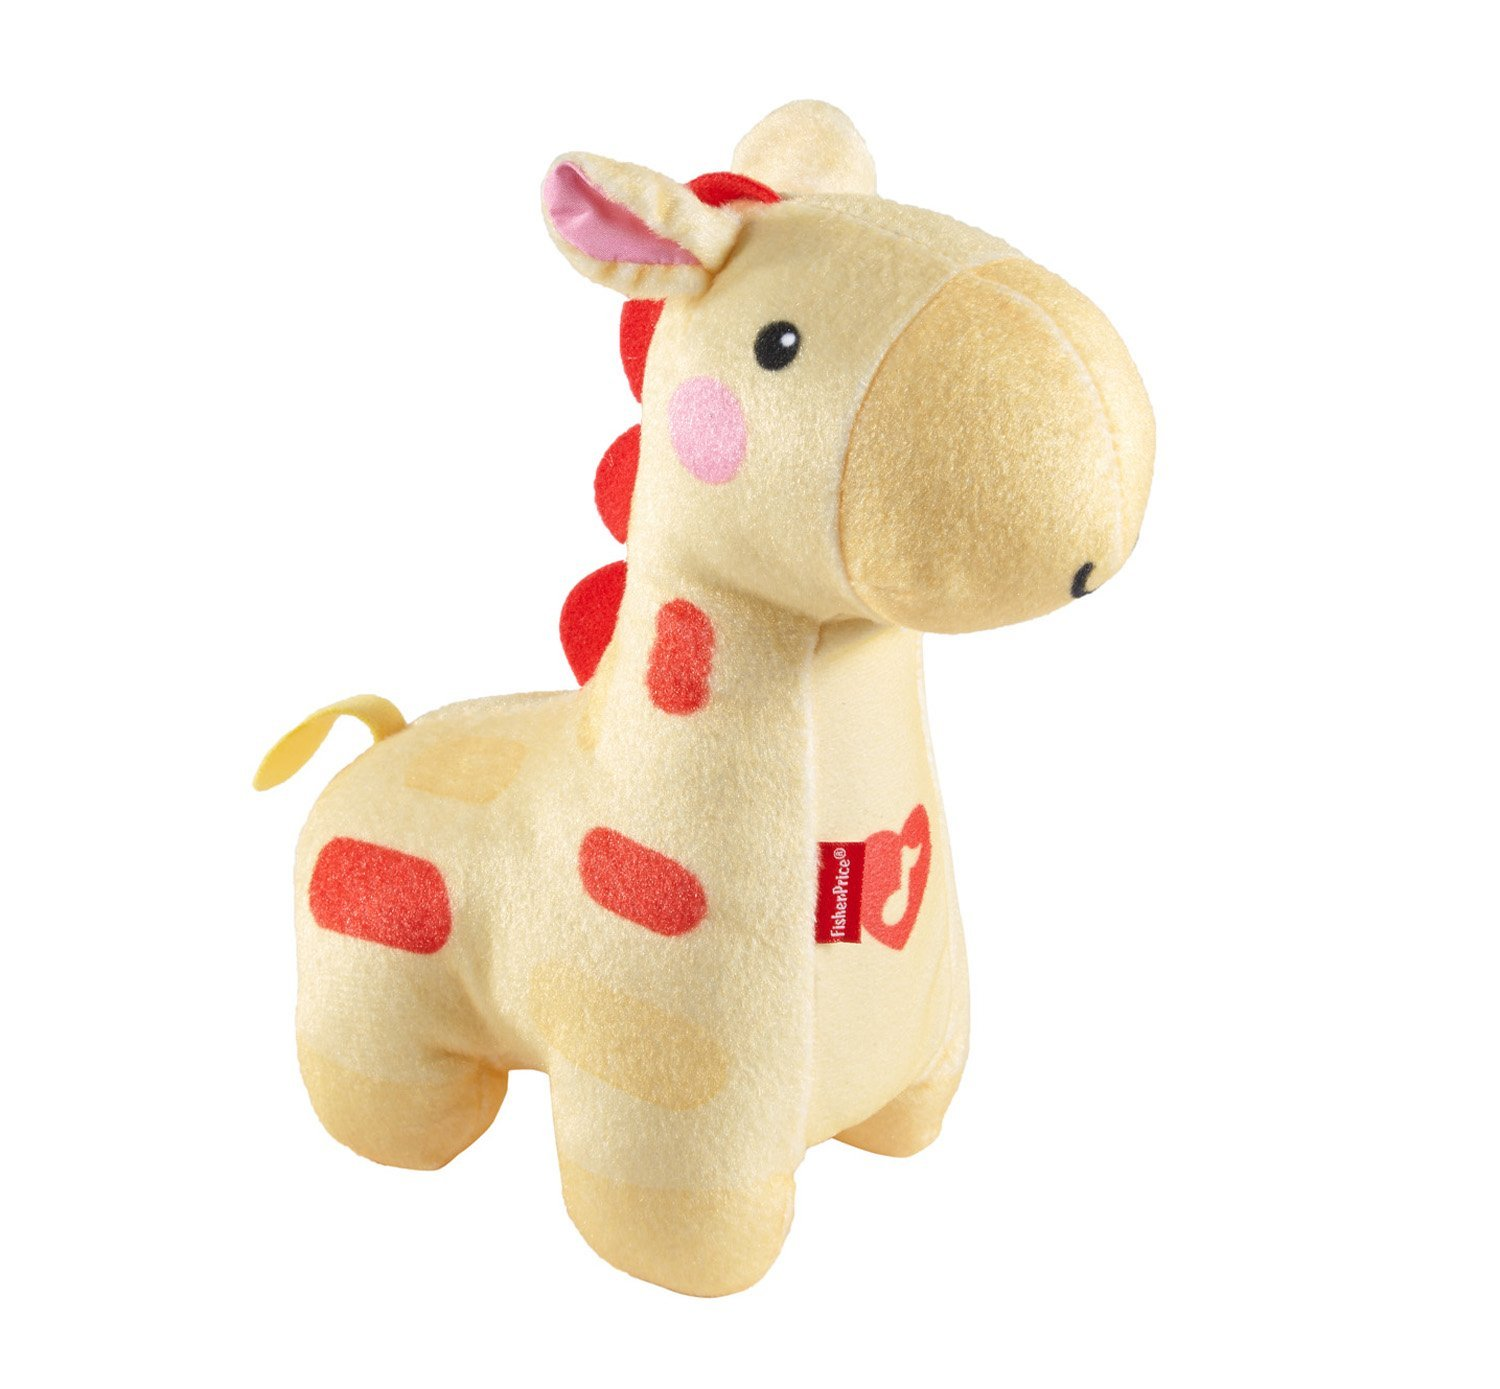 Soothe and Glow Giraffe